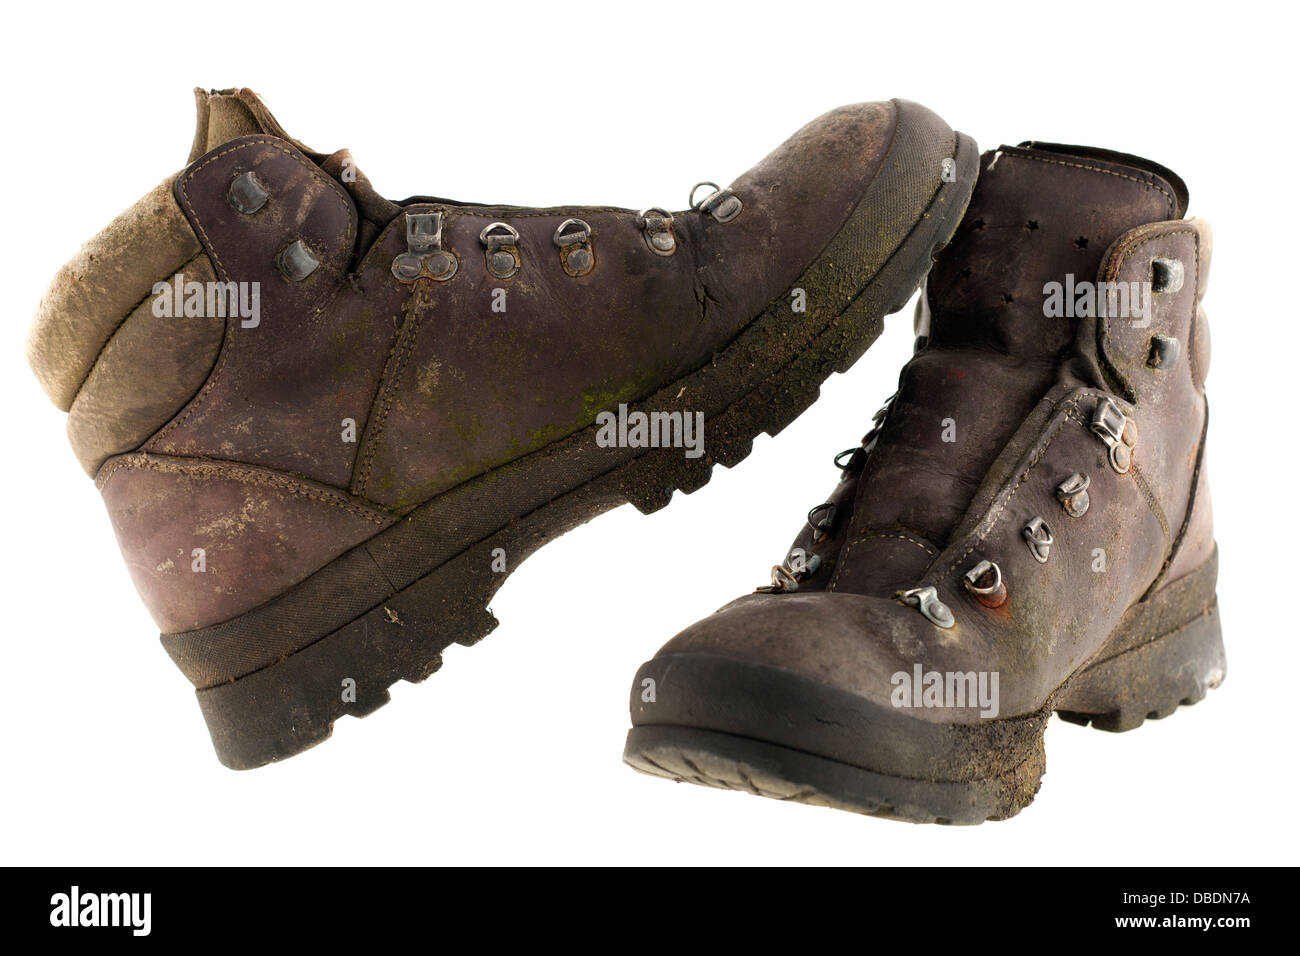 Pair of unlaced worn out weathered brown leather walking boots - Stock Image